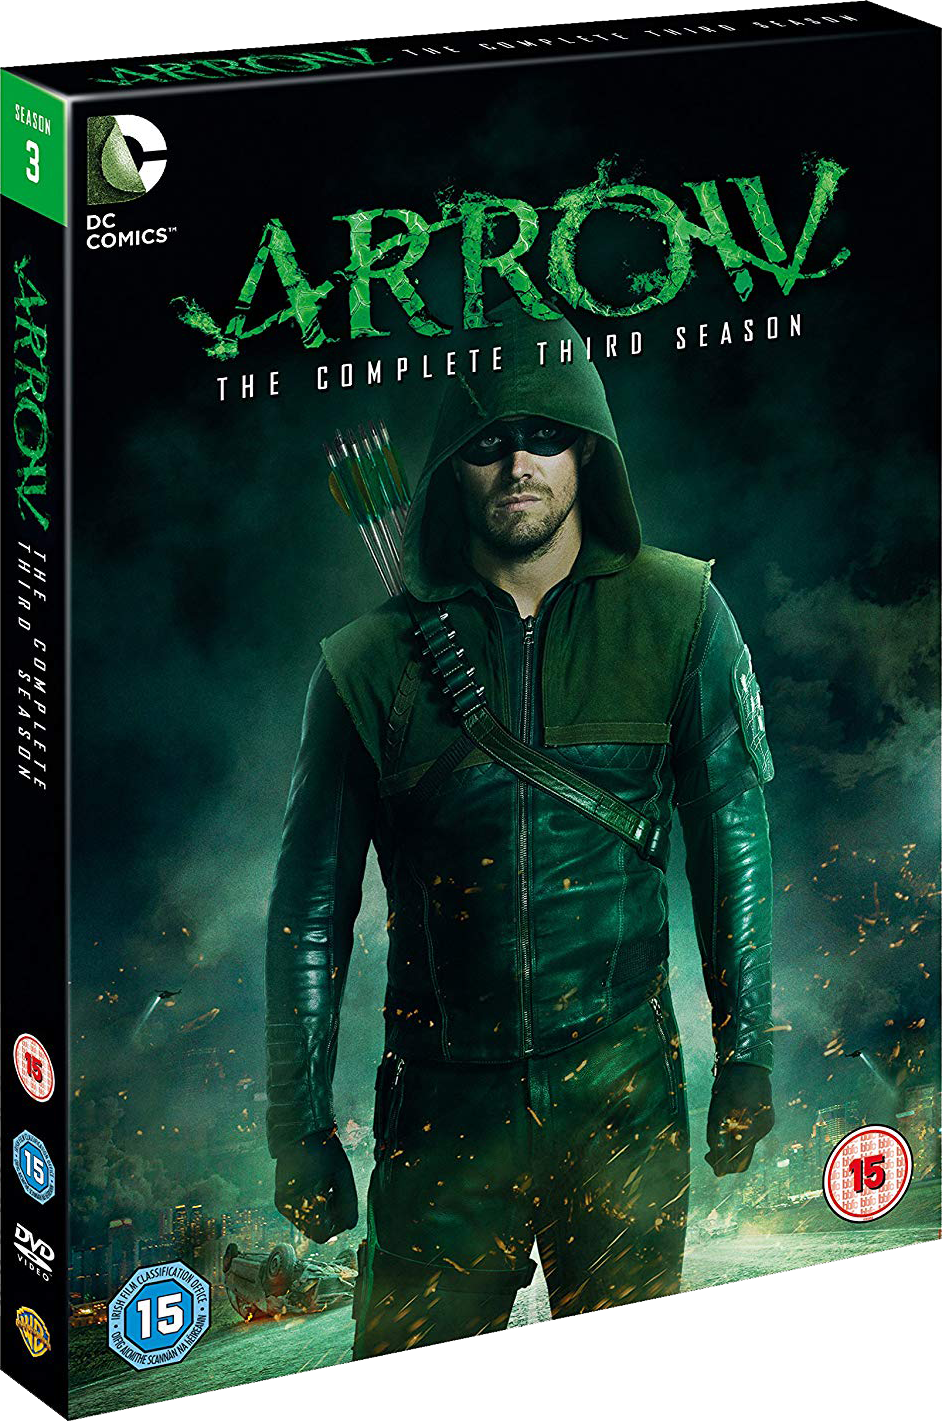 Arrow - The Complete Third Season region 2 cover.png